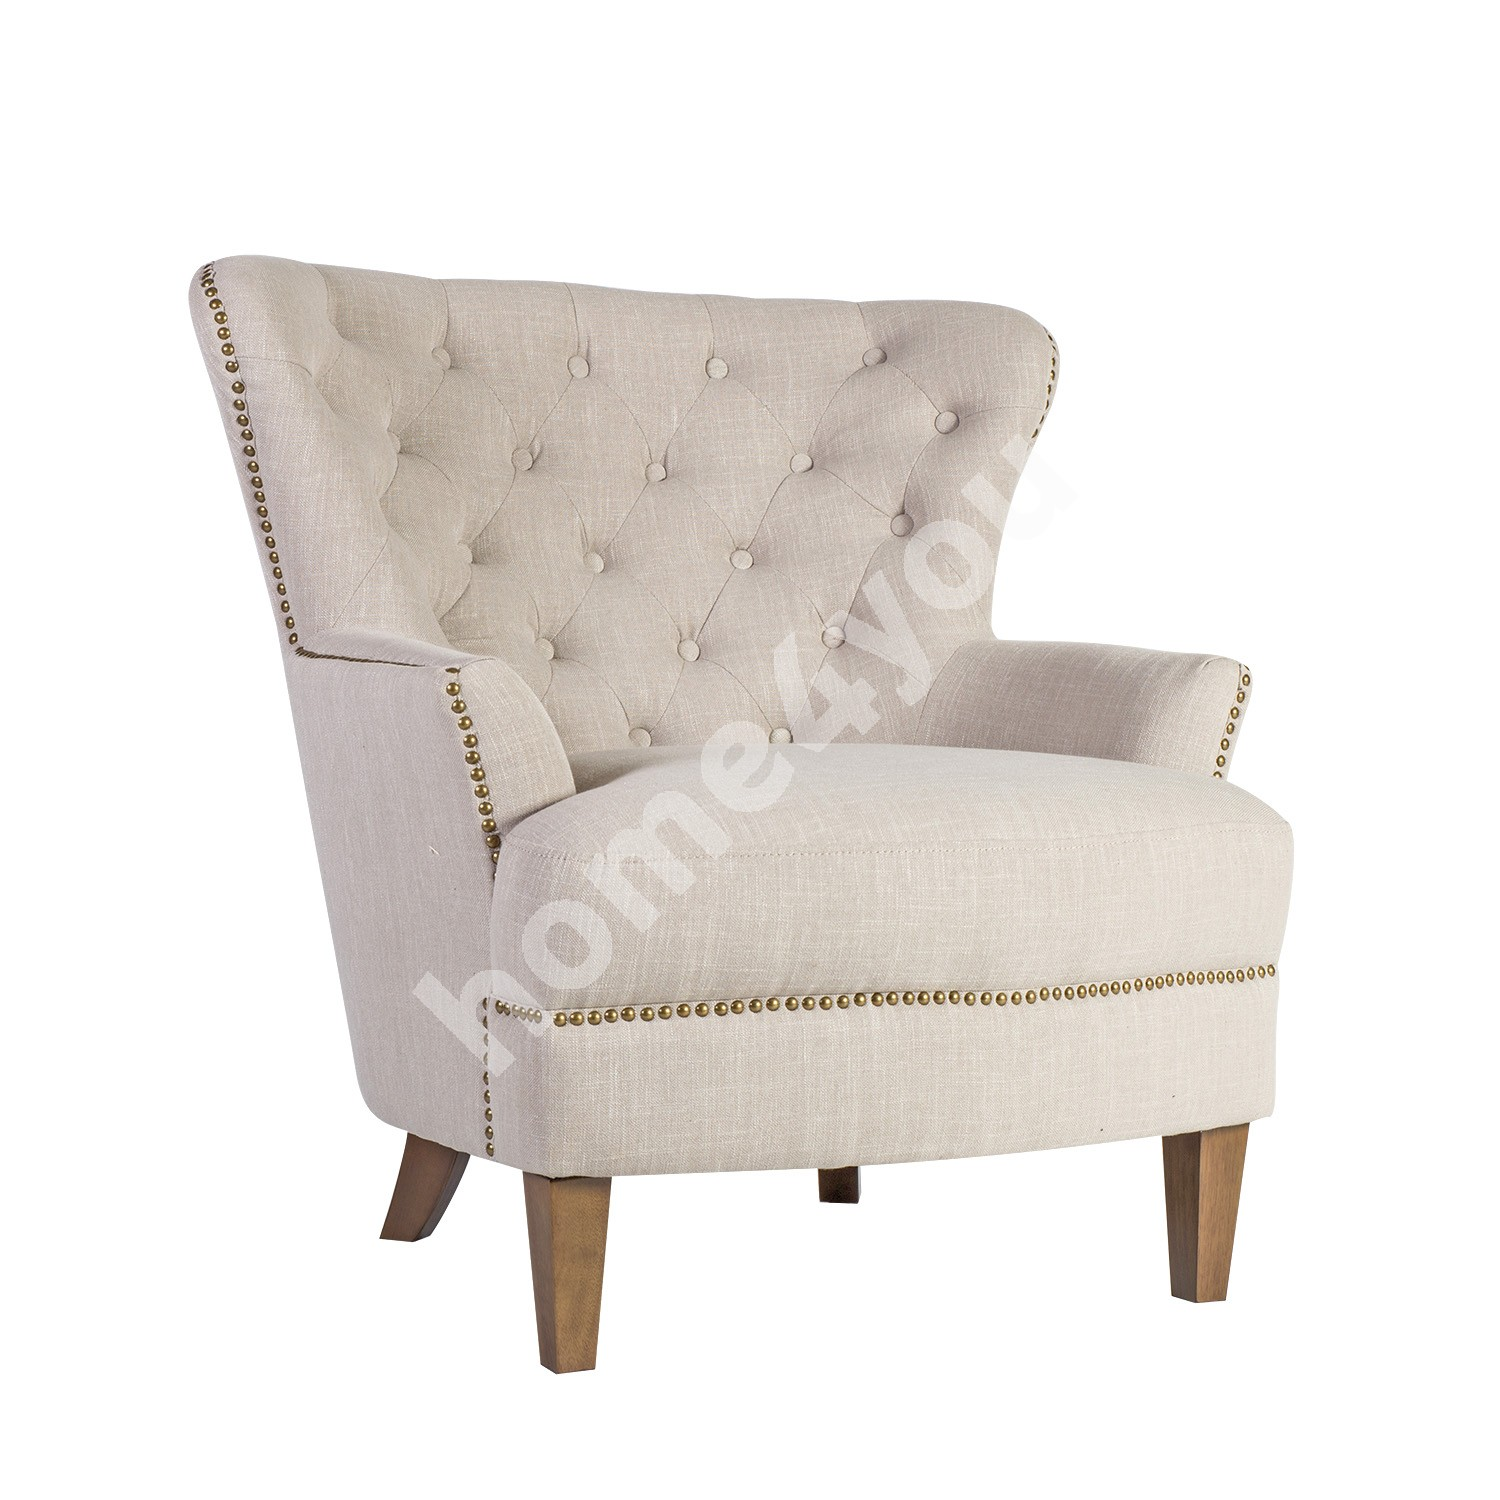 Arm chair HOLMES 79x85xH98cm, cover material: fabric, color: beige